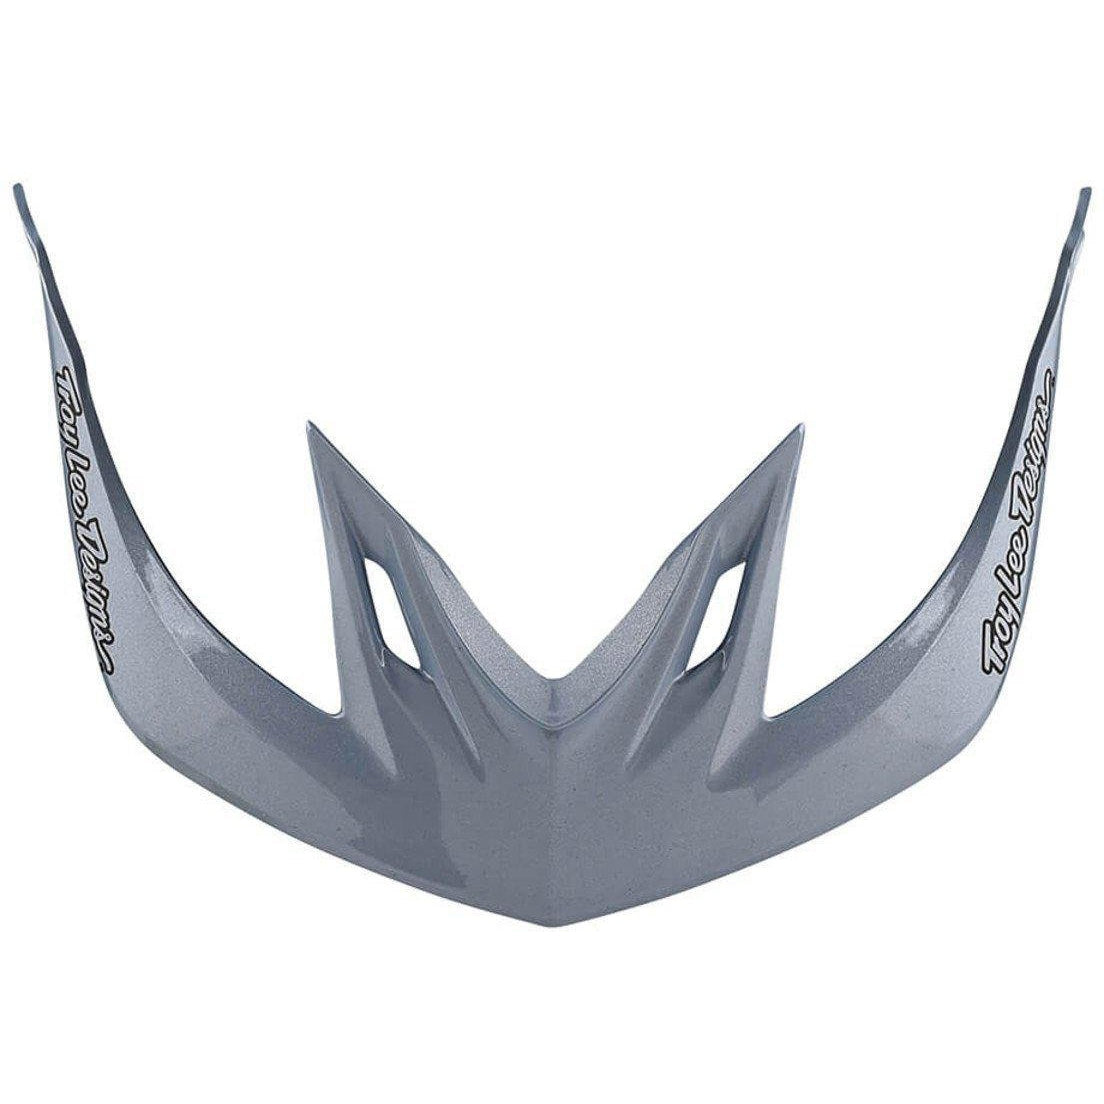 Troy Lee Designs Helmet Spares - A2 Replacement Visor